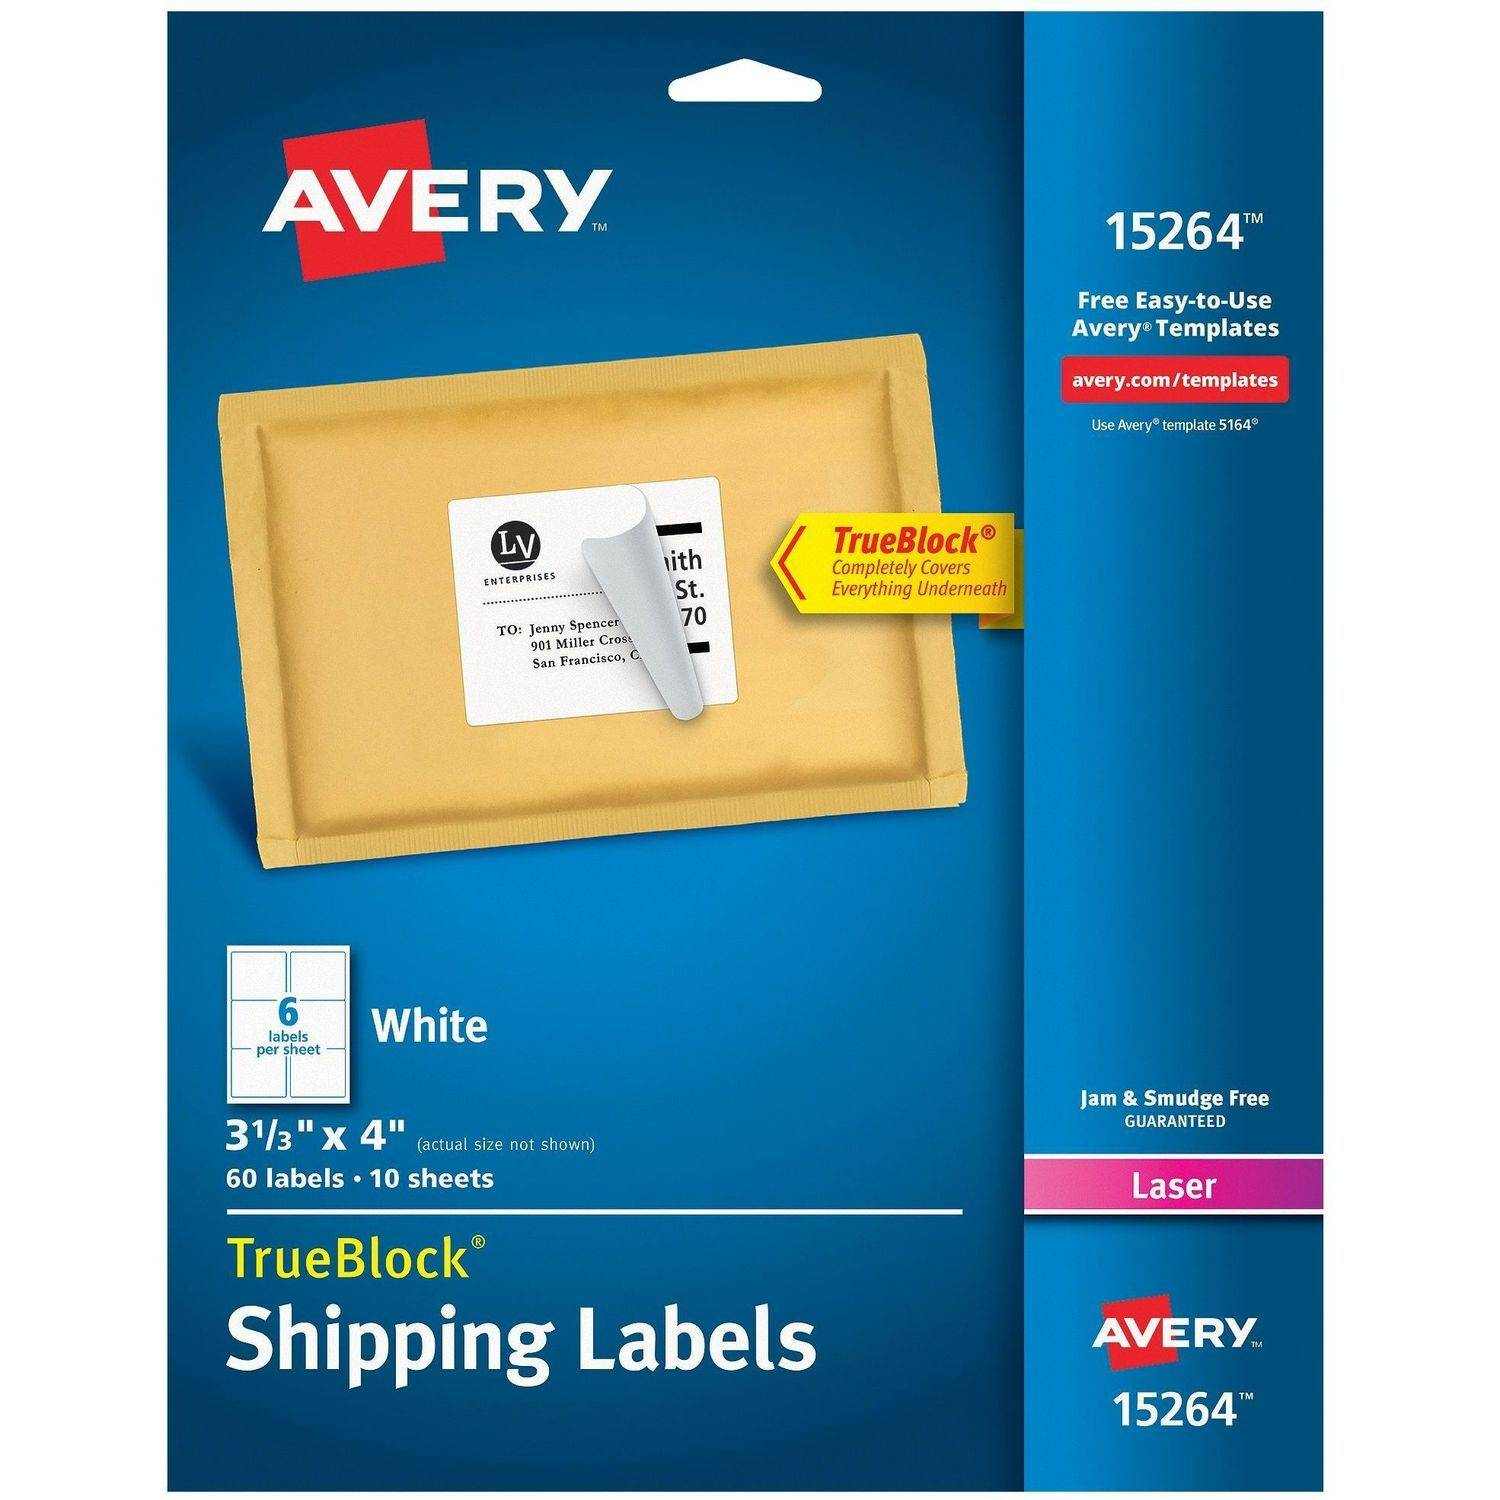 "Avery White Shipping Labels with TrueBlock Technology 15264, 3-1/3"" x 4"", Laser/Inkjet, 60pk"